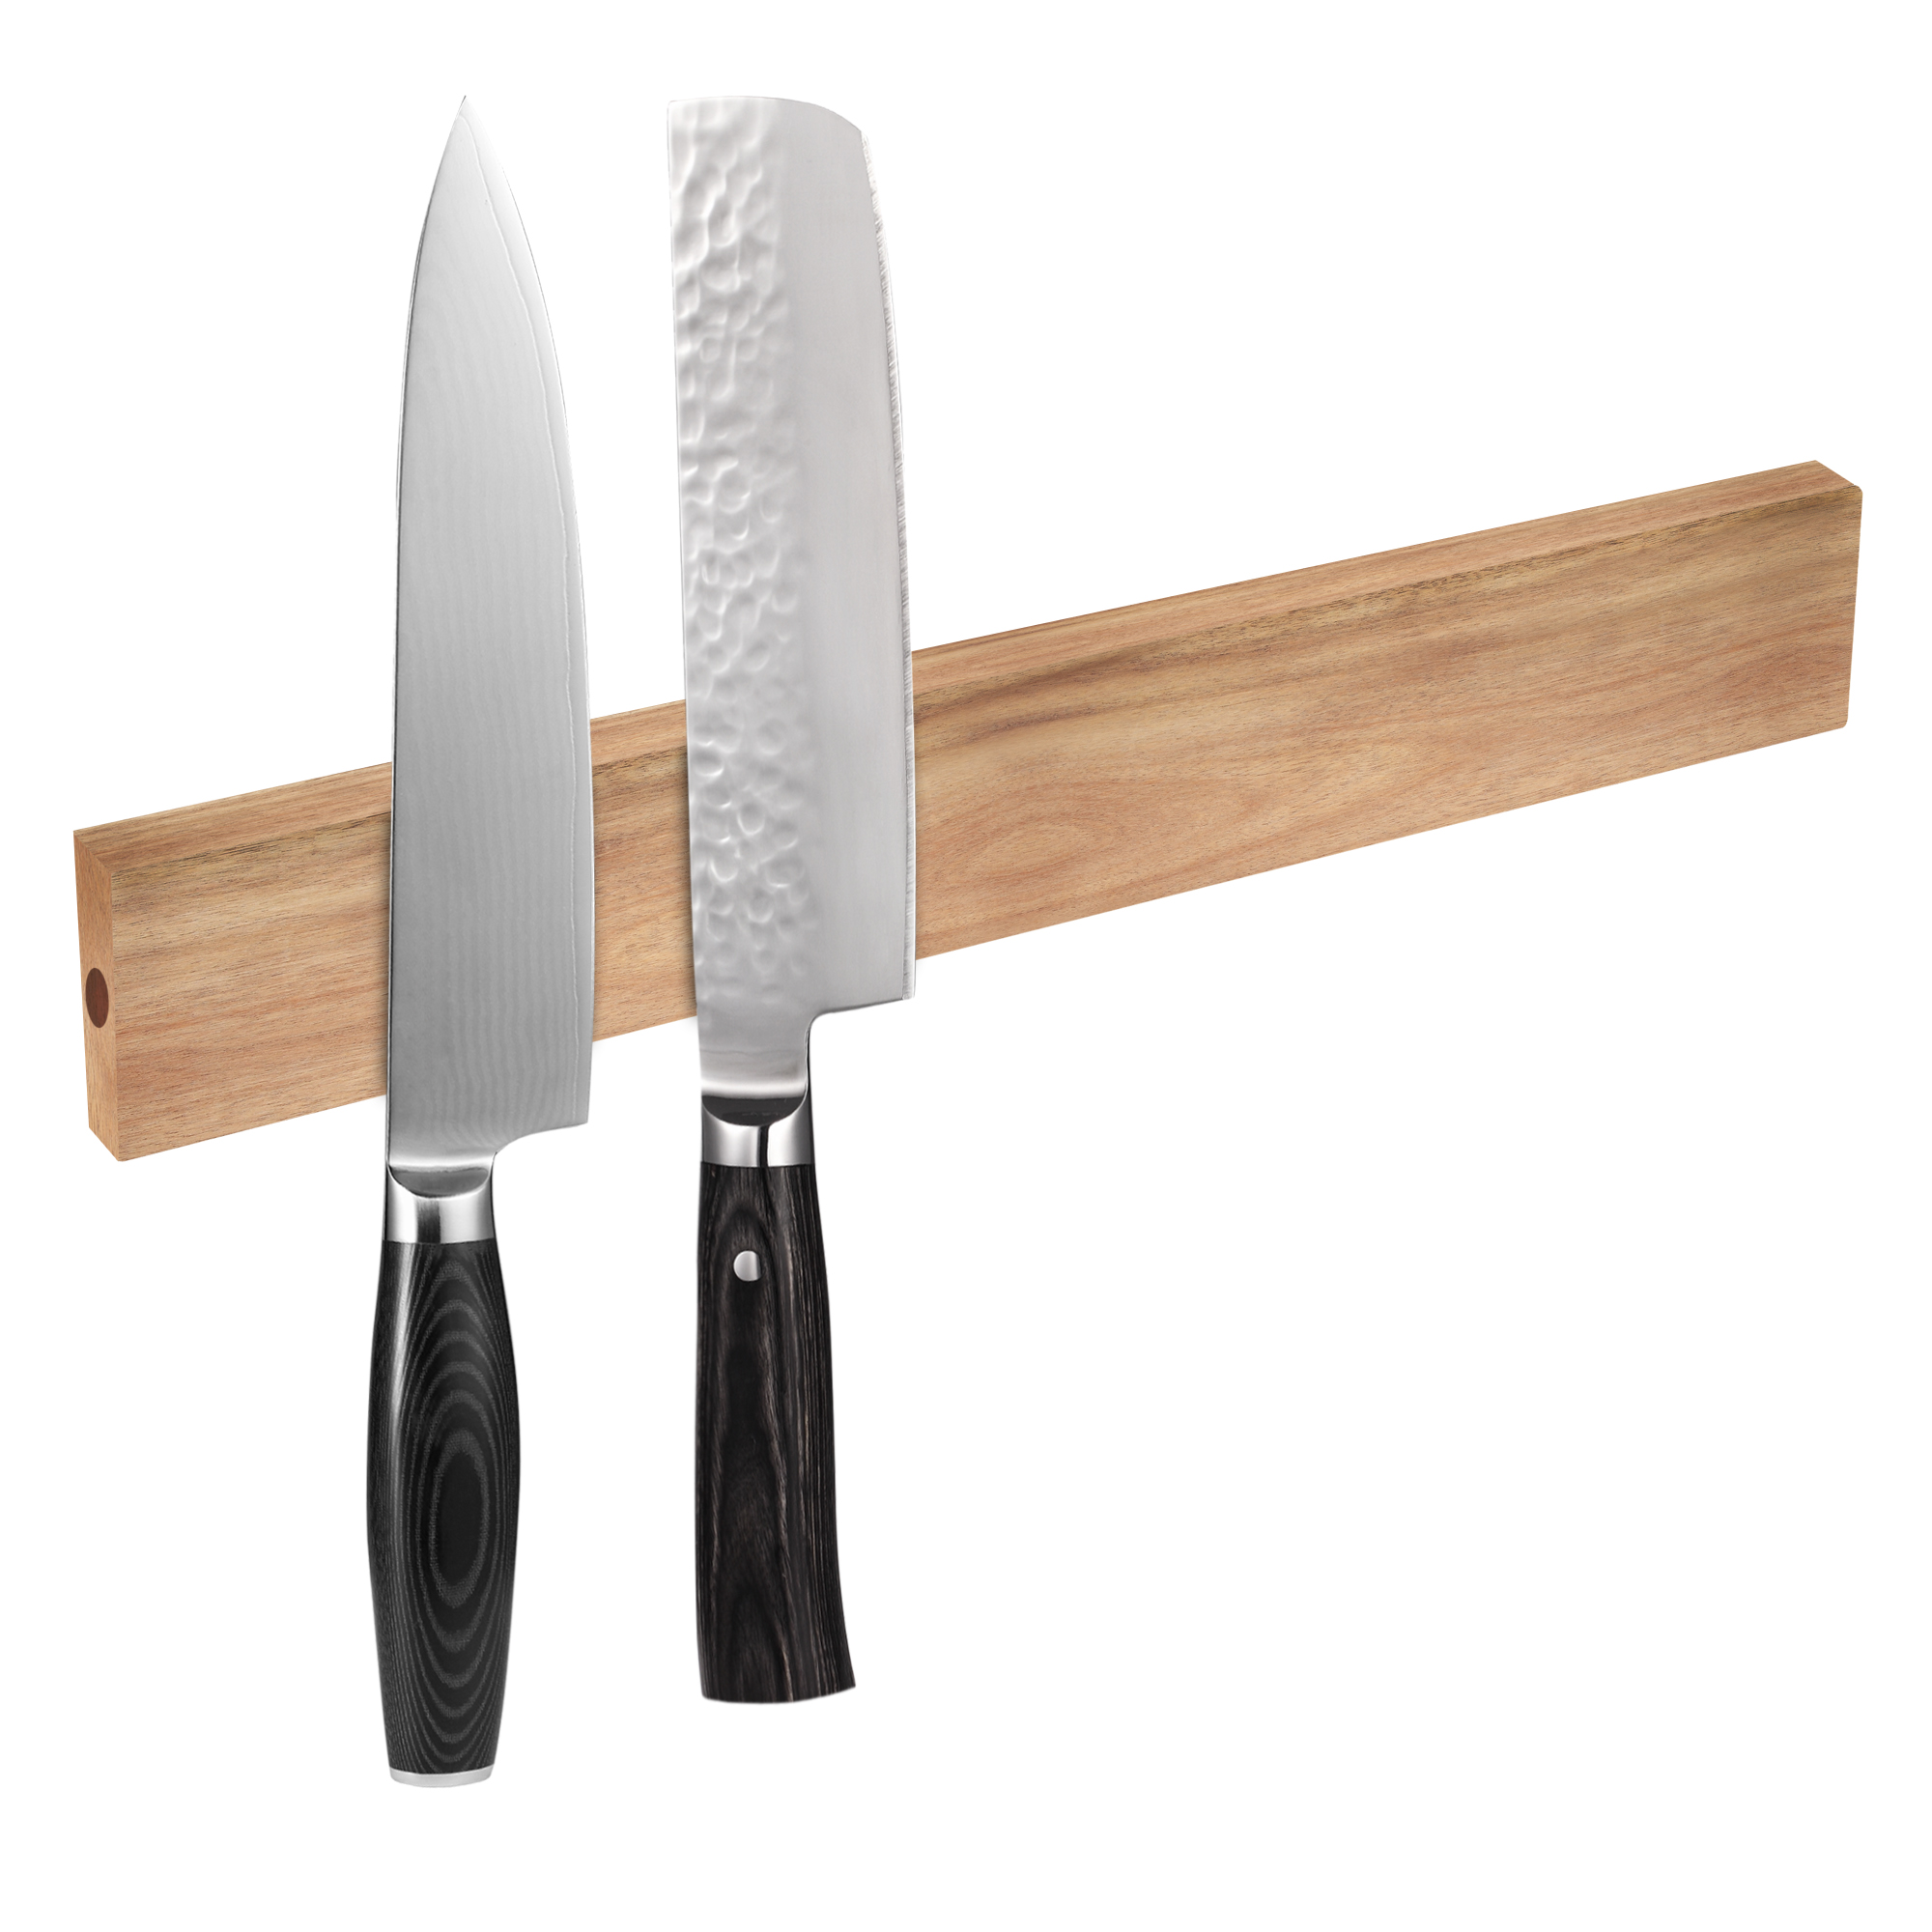 Hecef 6/12 Inches Magnetic Knife Strip, Acacia Wooden Knife Holder For Storaging All Kinds Of Metal Items